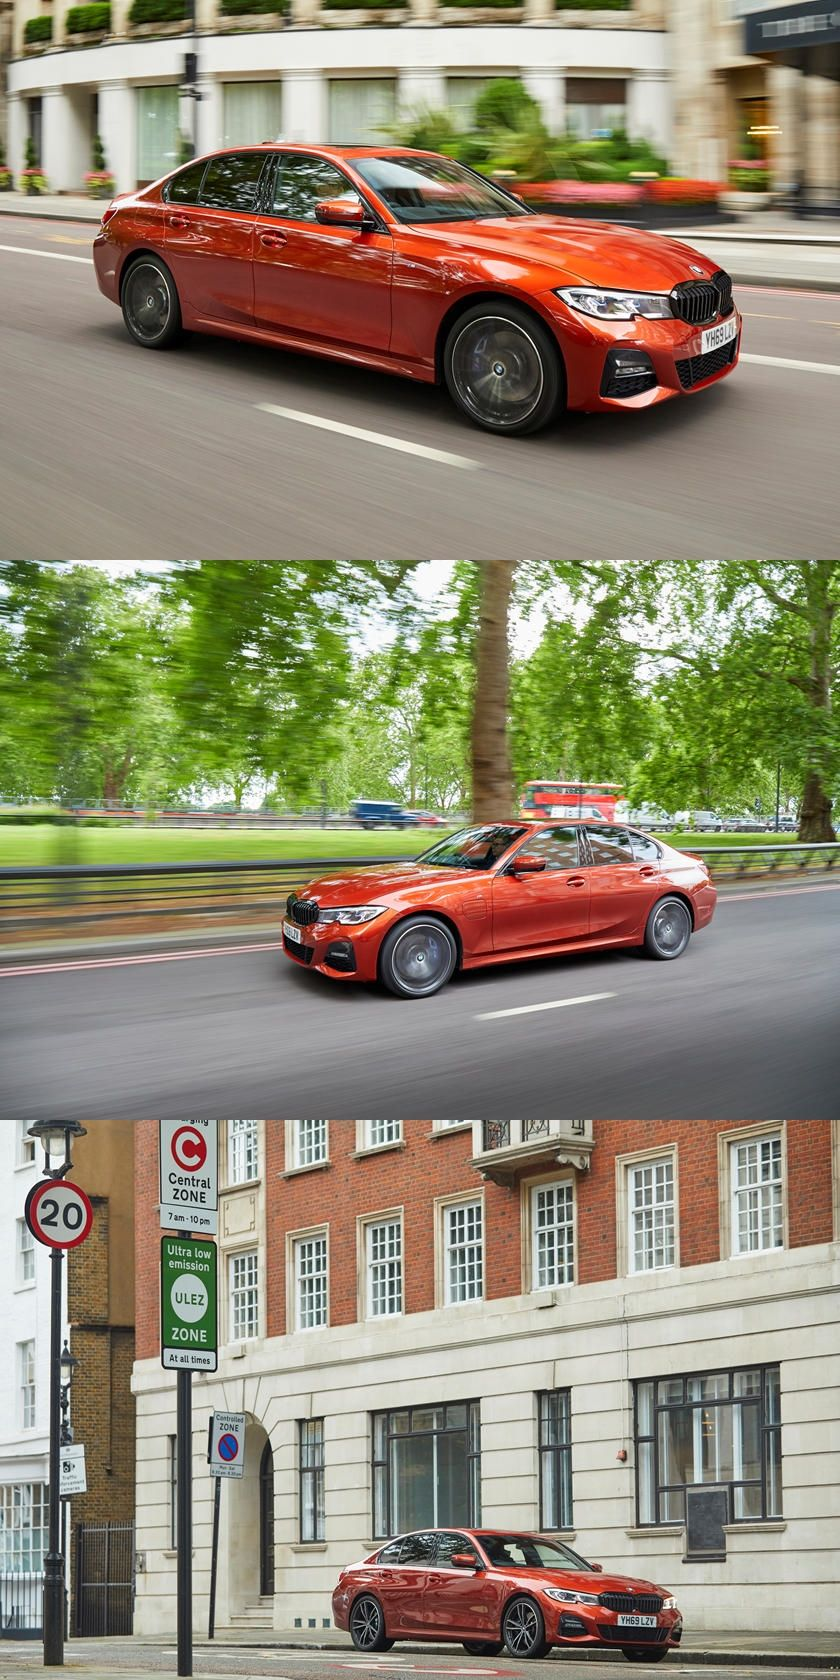 Bmw S Latest Hybrid Technology Is Brilliant This Is An Industry First In 2020 Bmw Latest Bmw Hybrid Car